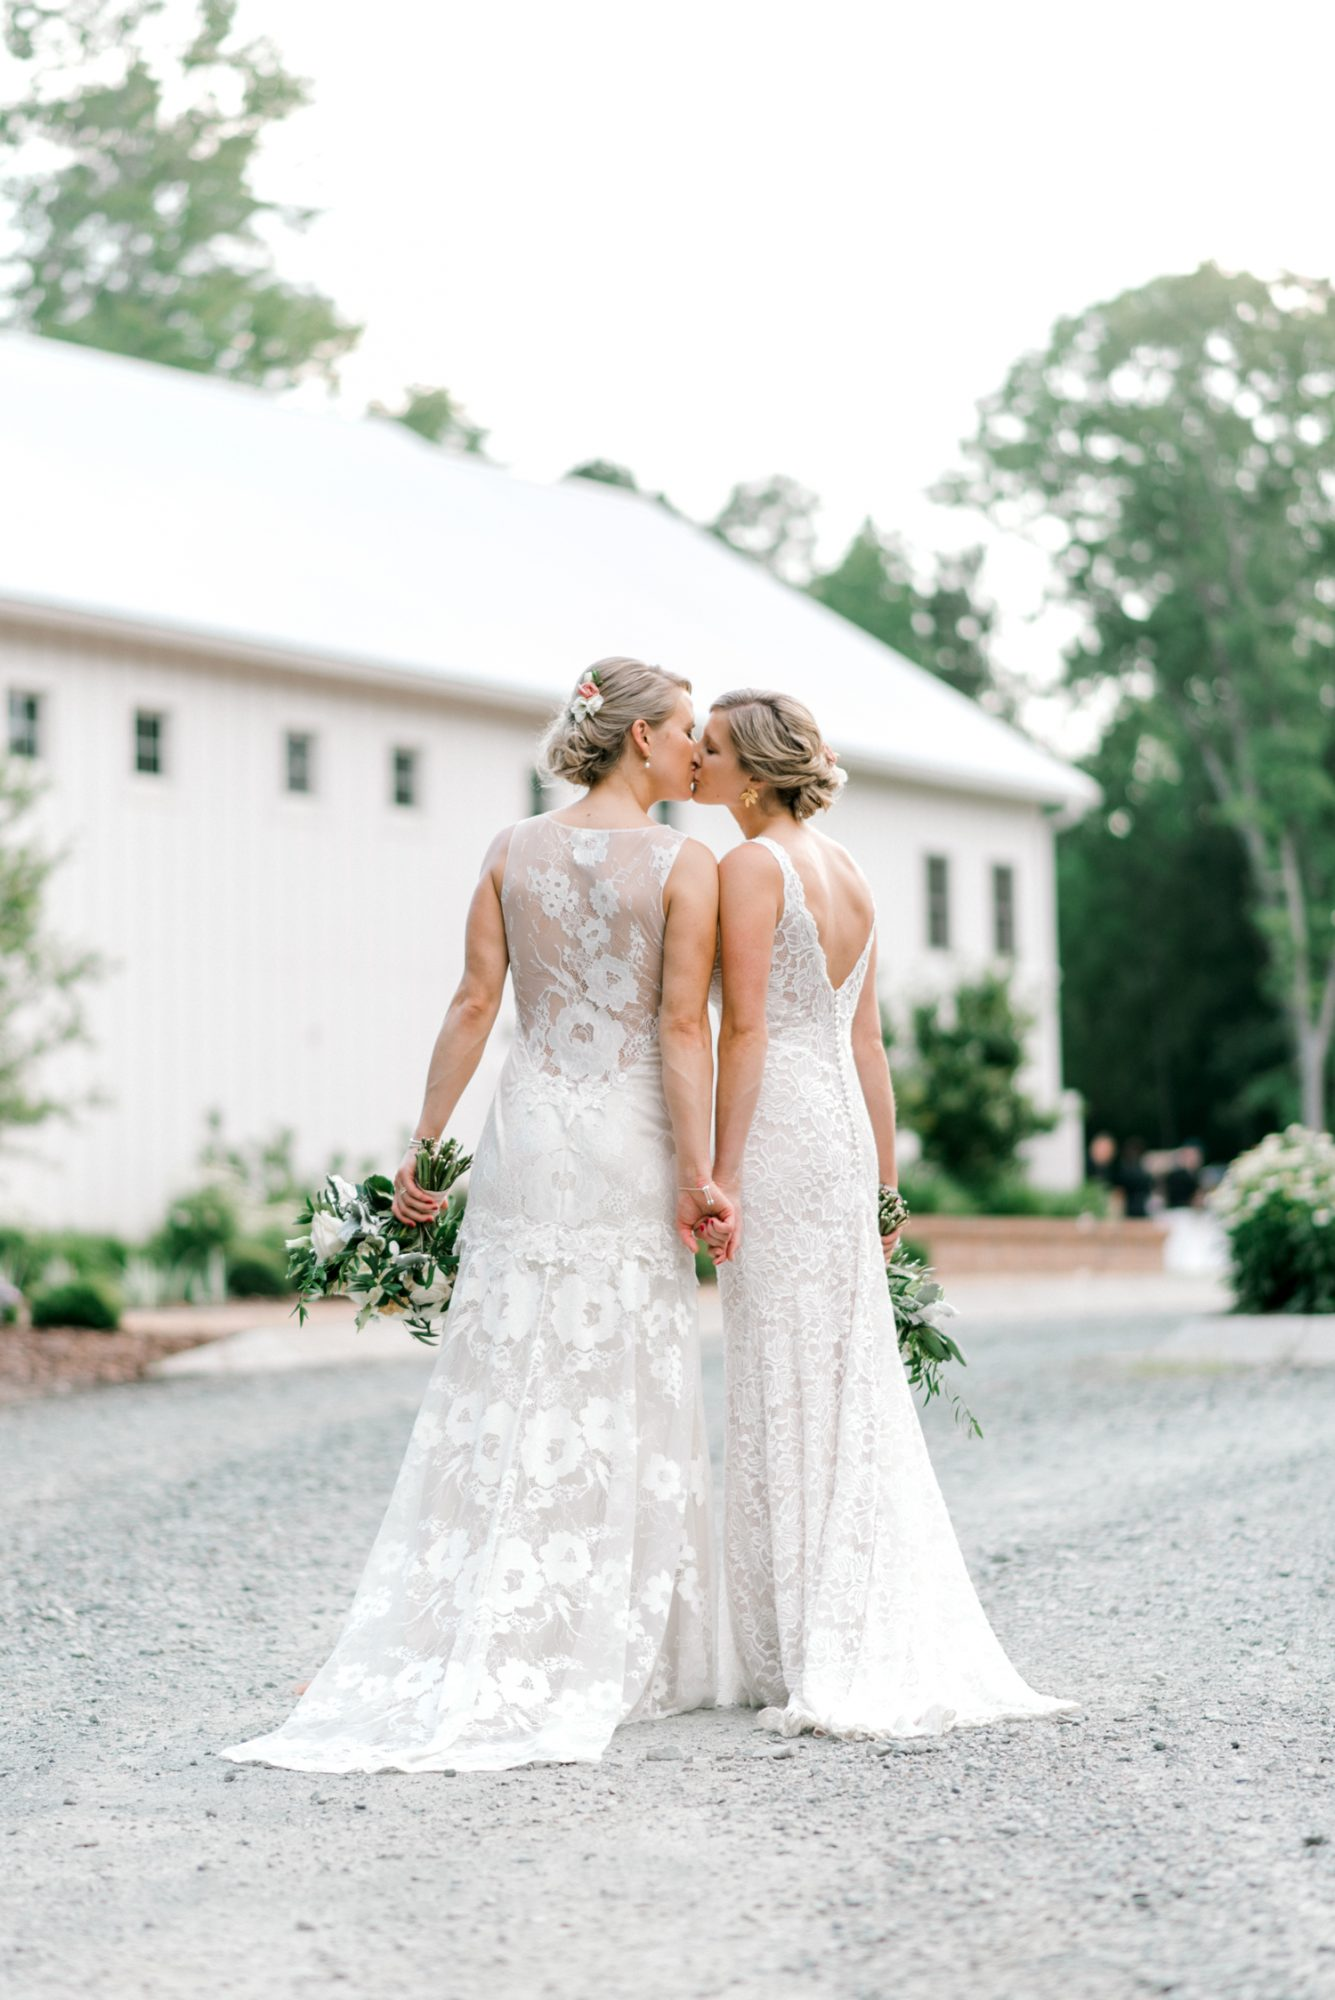 paige and kristine wedding brides kissing by barn